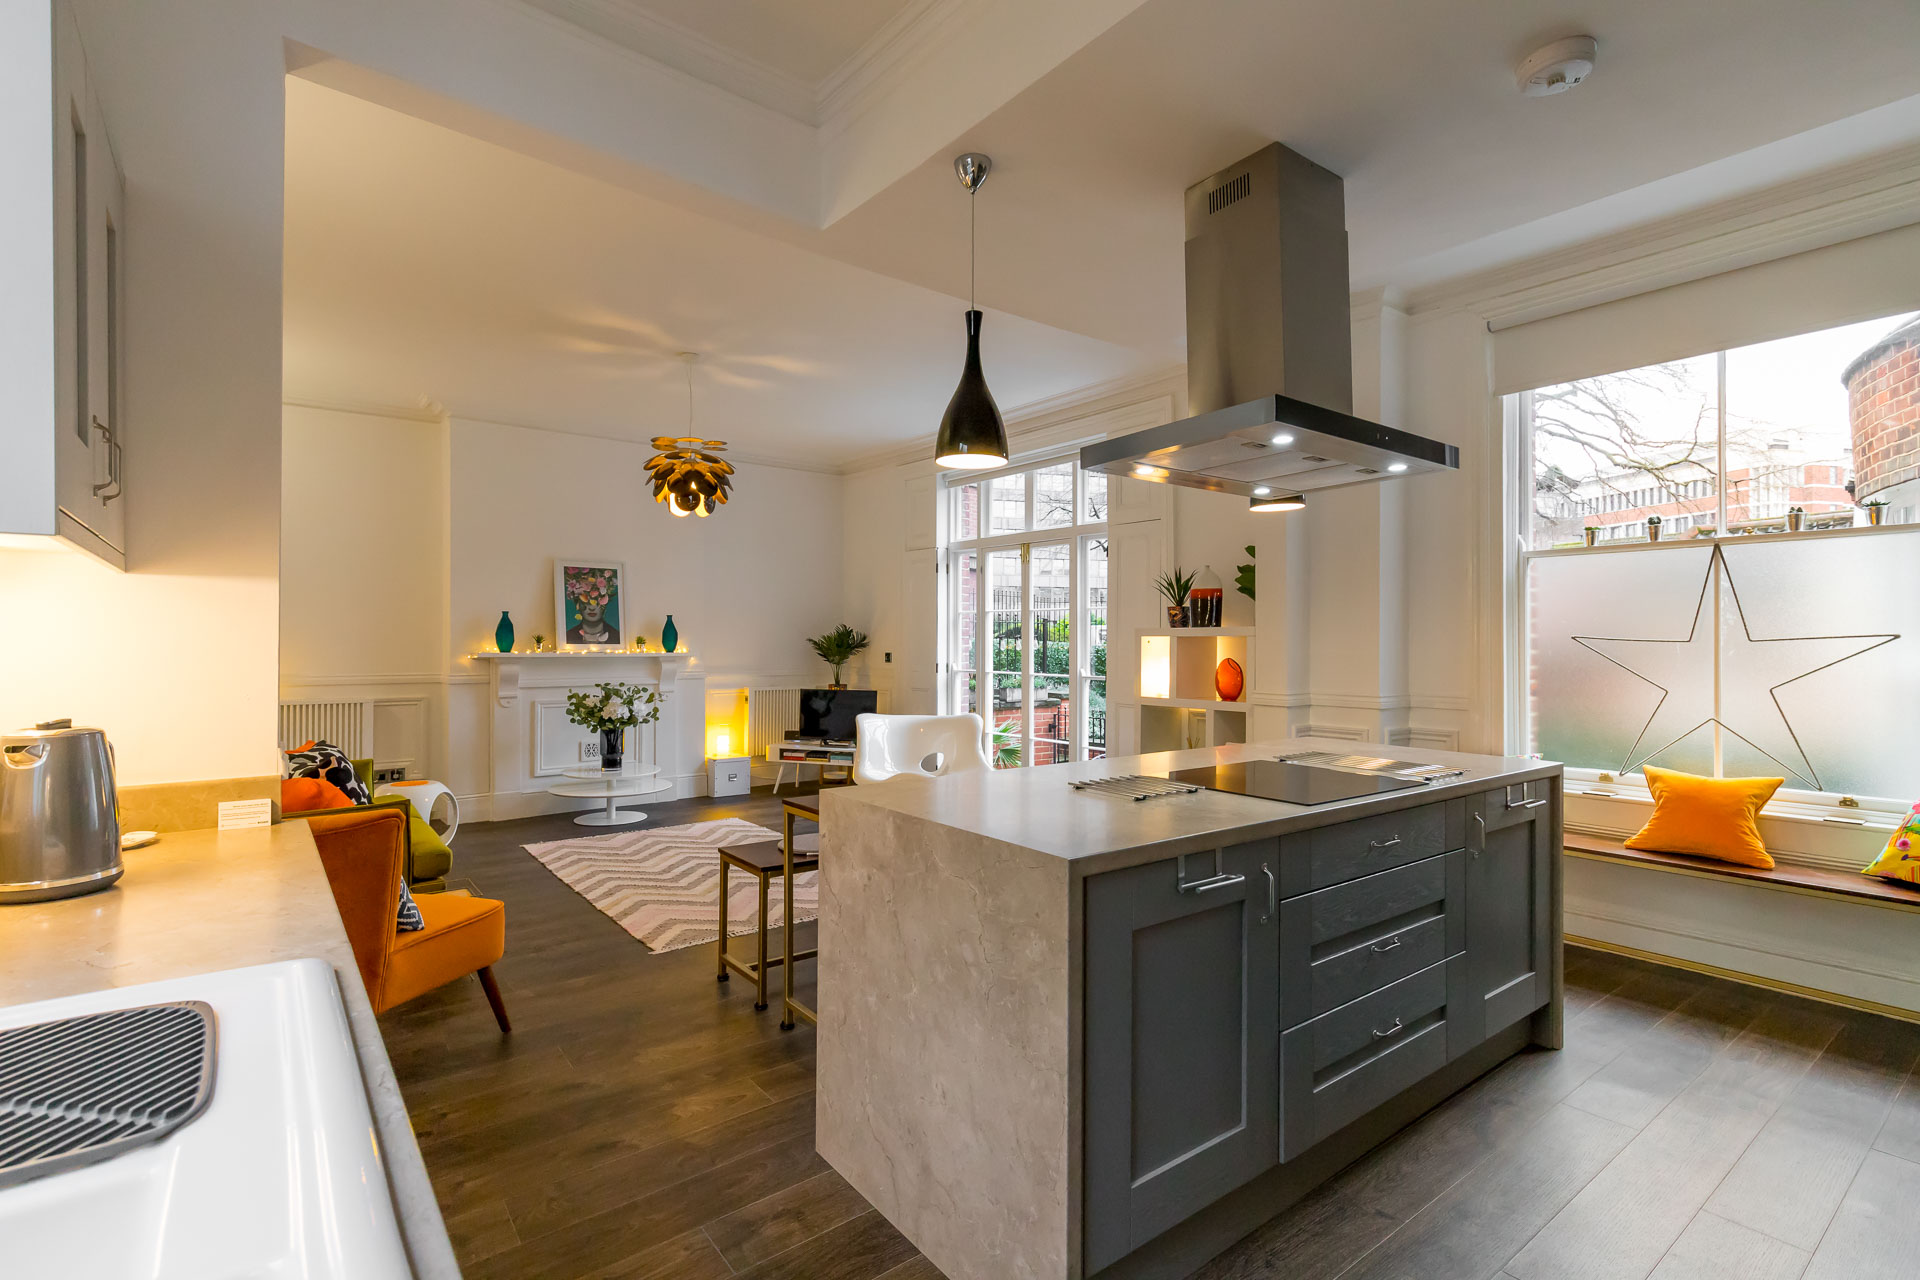 Interior view of All Saints Green Cottage living kitchen and dining area